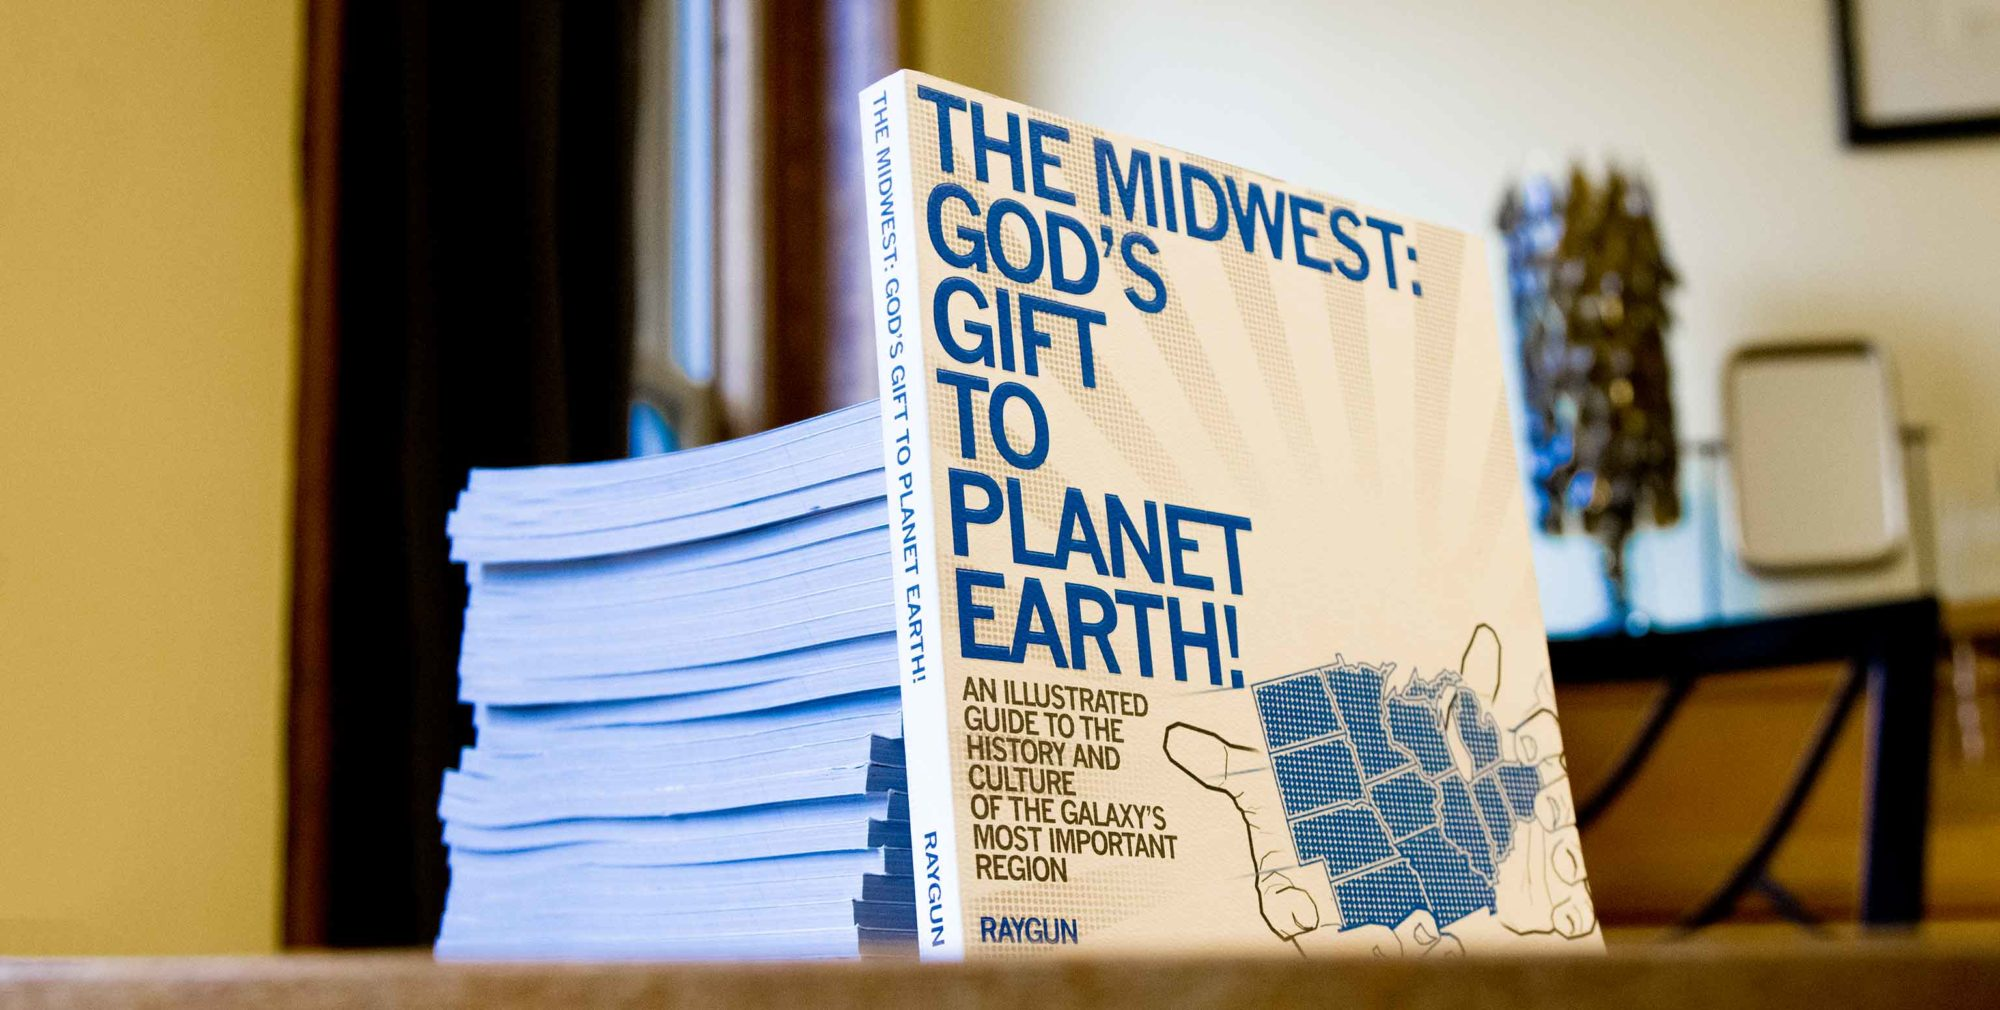 The Midwest: God's Gift to Planet Earth